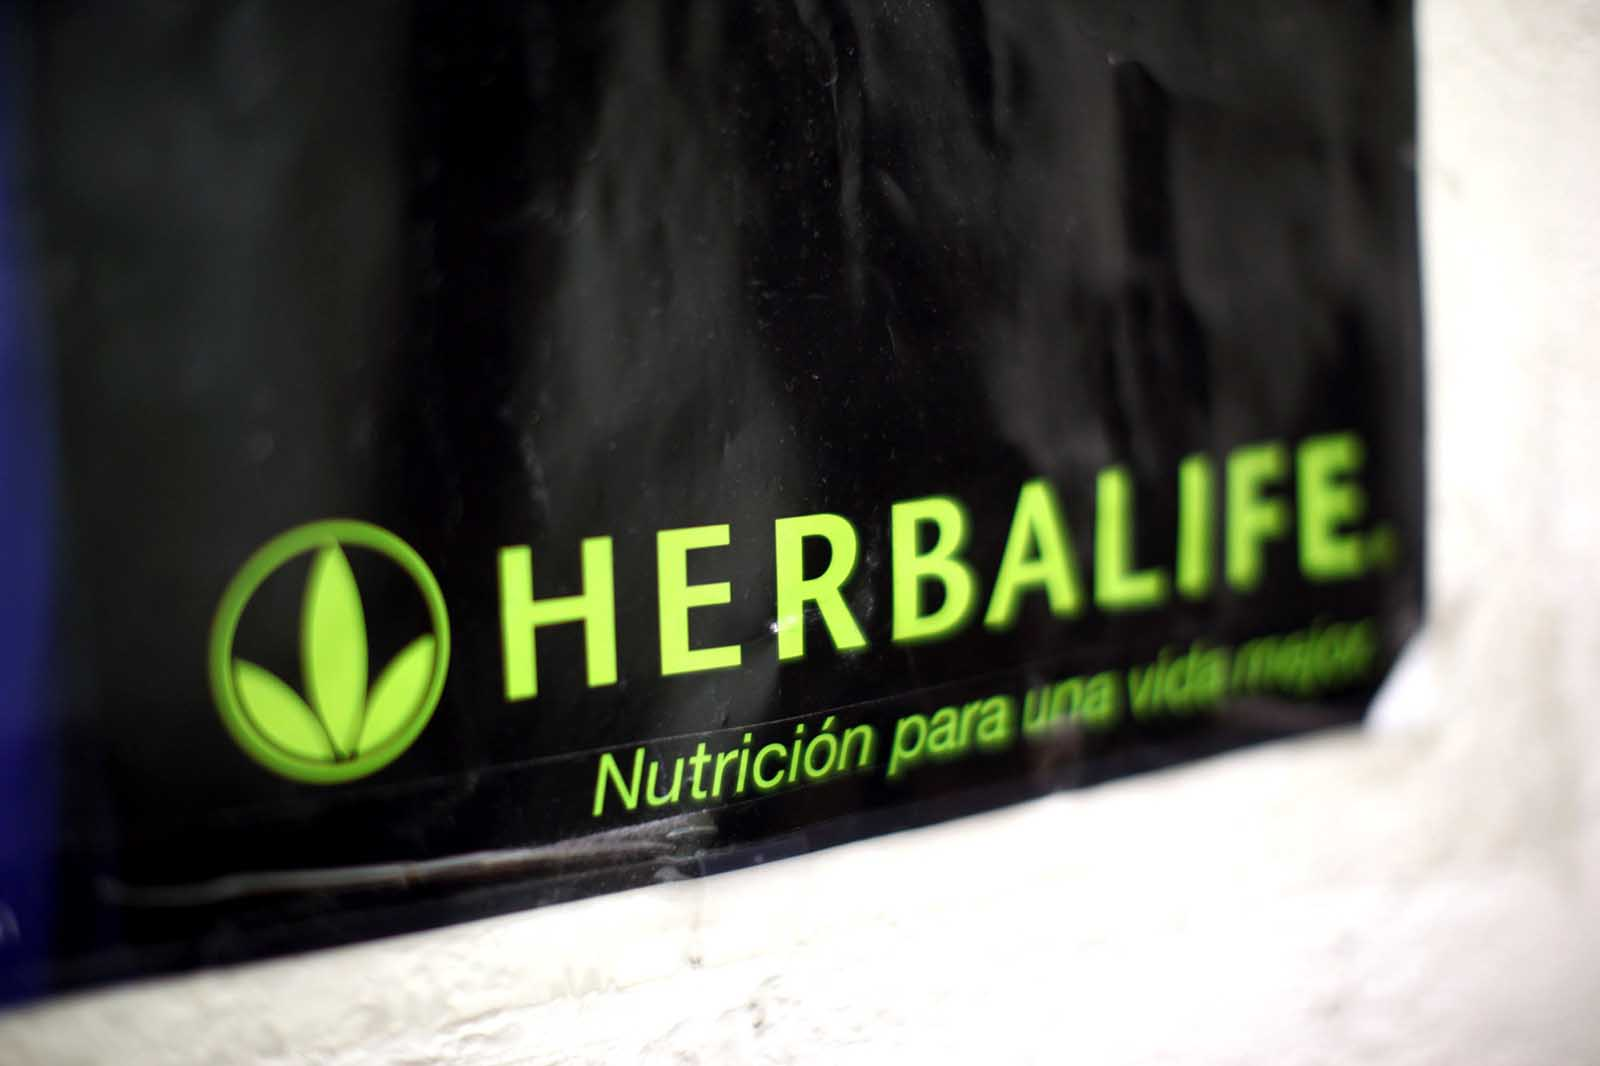 Herbalife had it stock numbers drop drastically on Friday thanks to an indictment from federal prosecutors. But what did the nutritional MLM do?